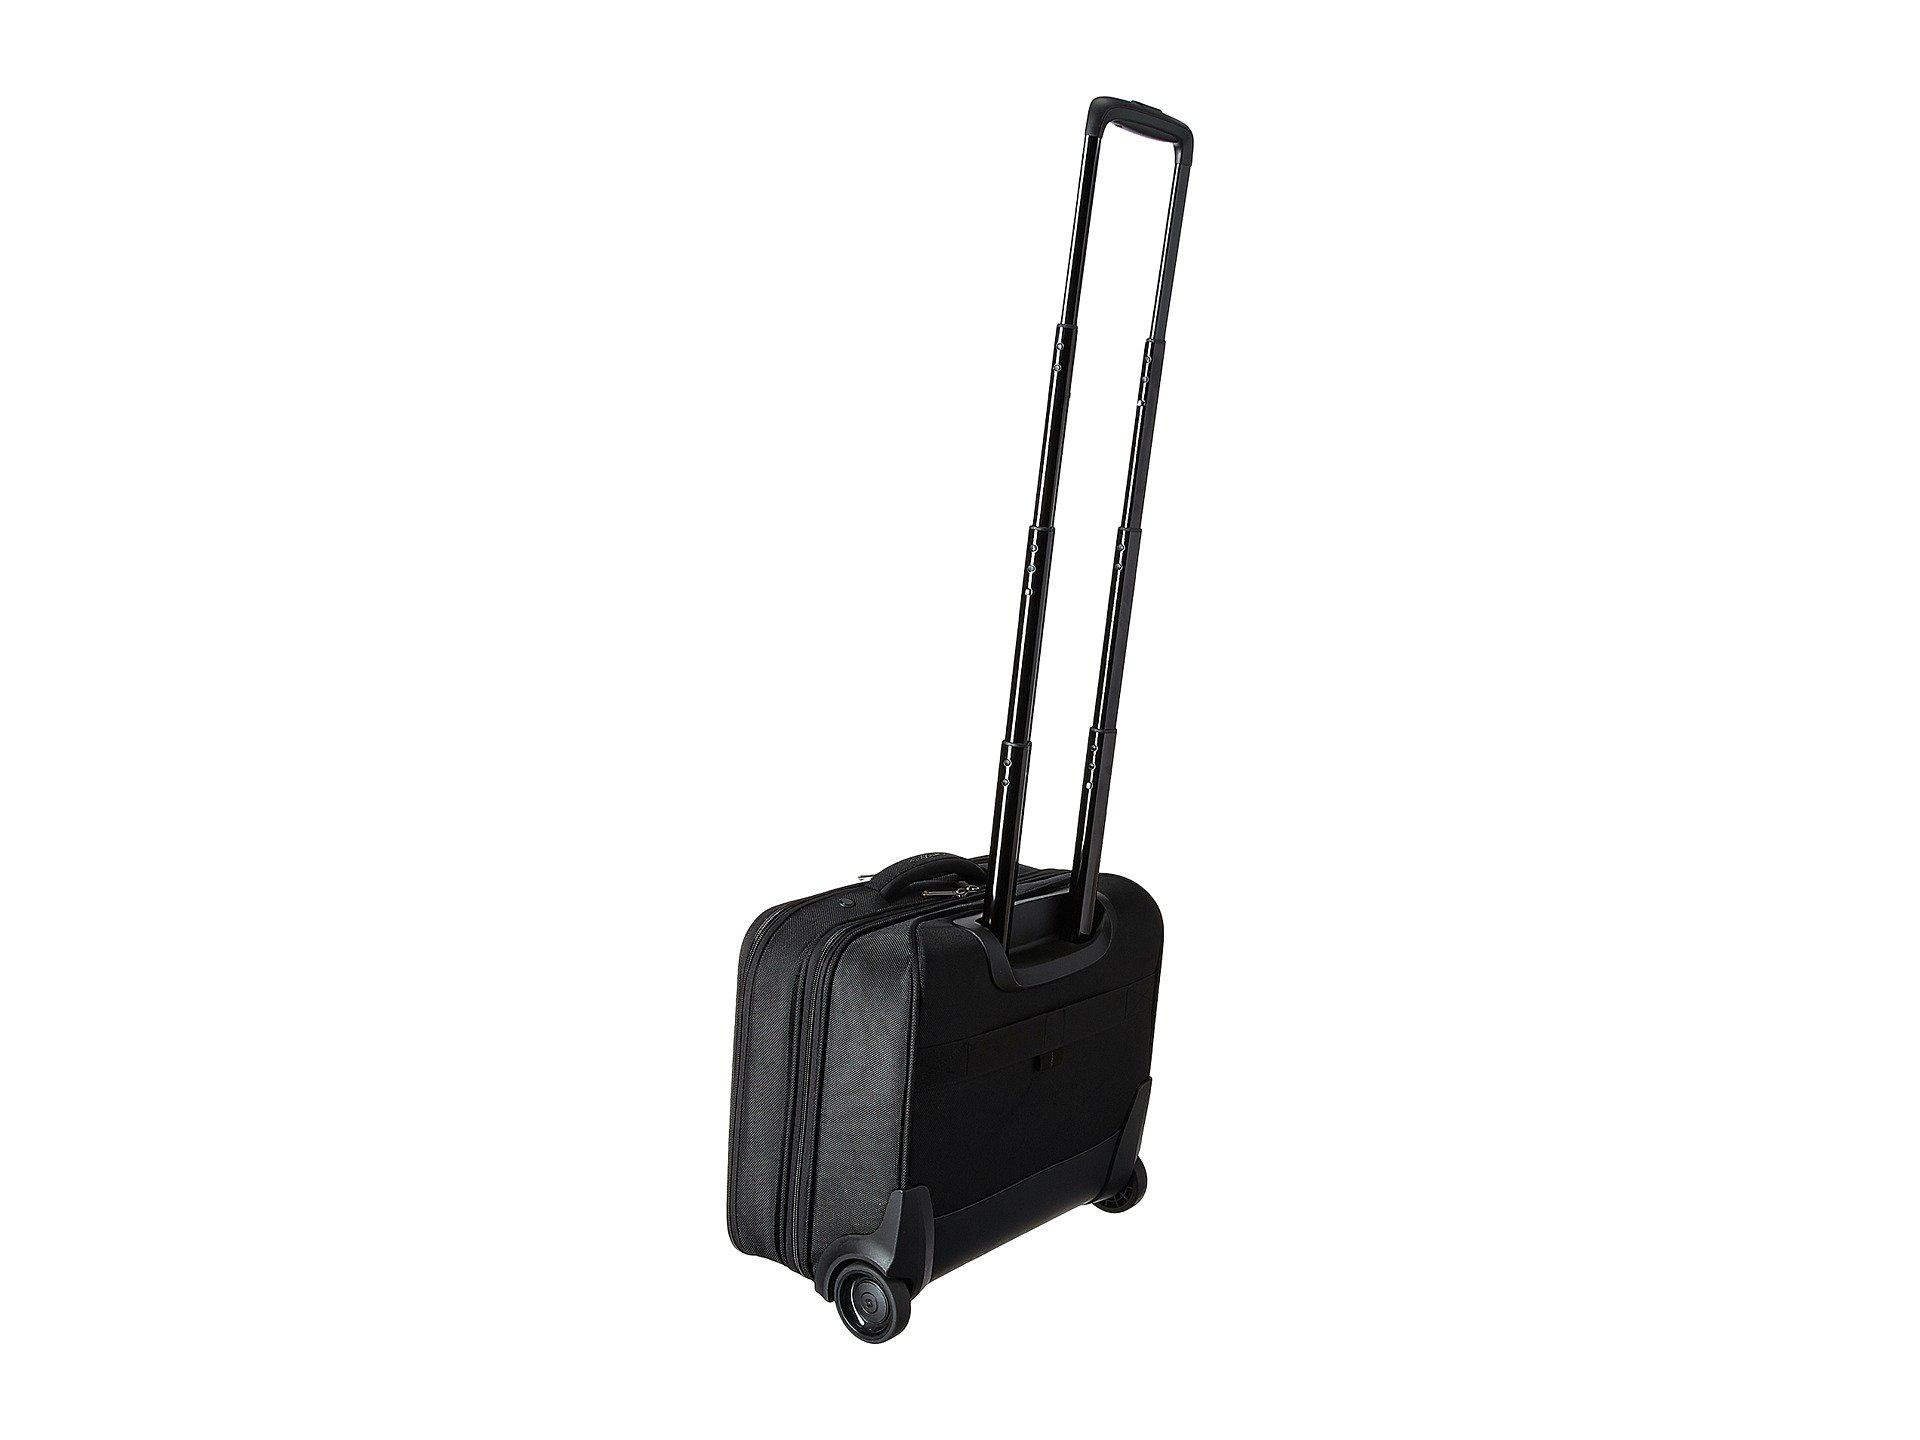 e431baece4 Samsonite - Xenon 3.0 15.6 Laptop Mobile Office (black) Computer Bags for  Men -